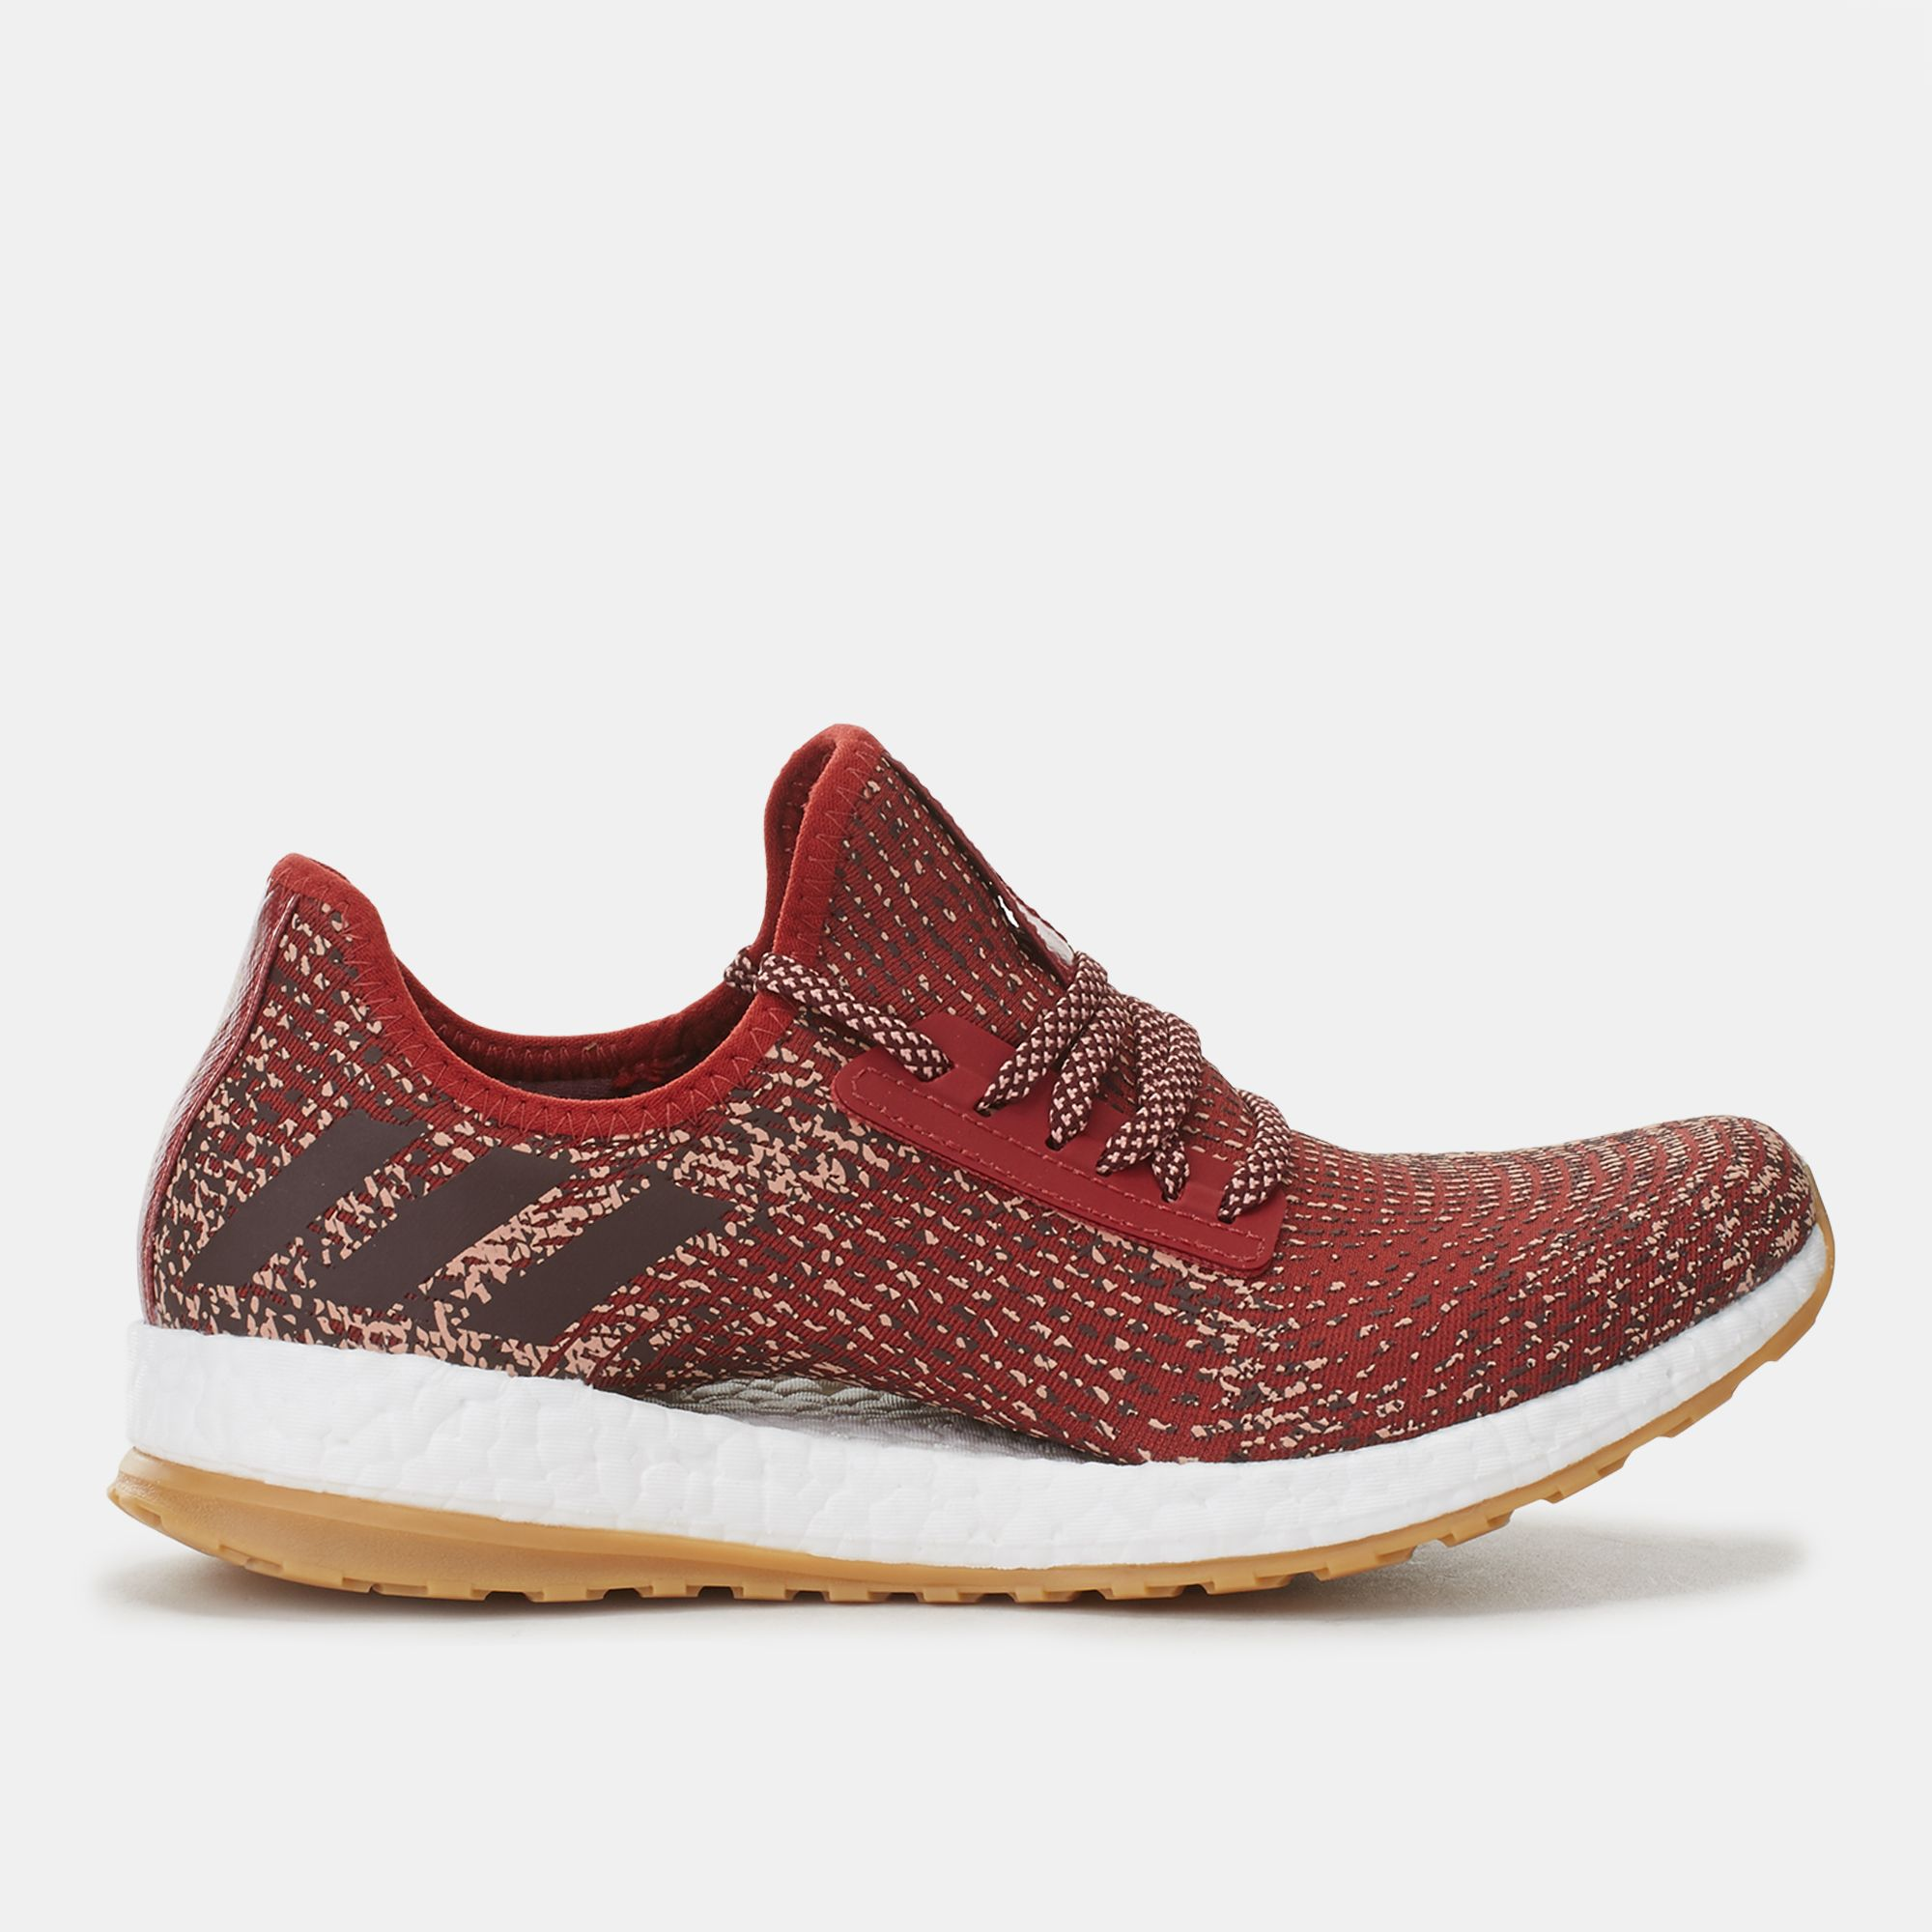 5637e1c0ae365 order red orange womens adidas pure boost all terrain shoes 49bc1 b888a